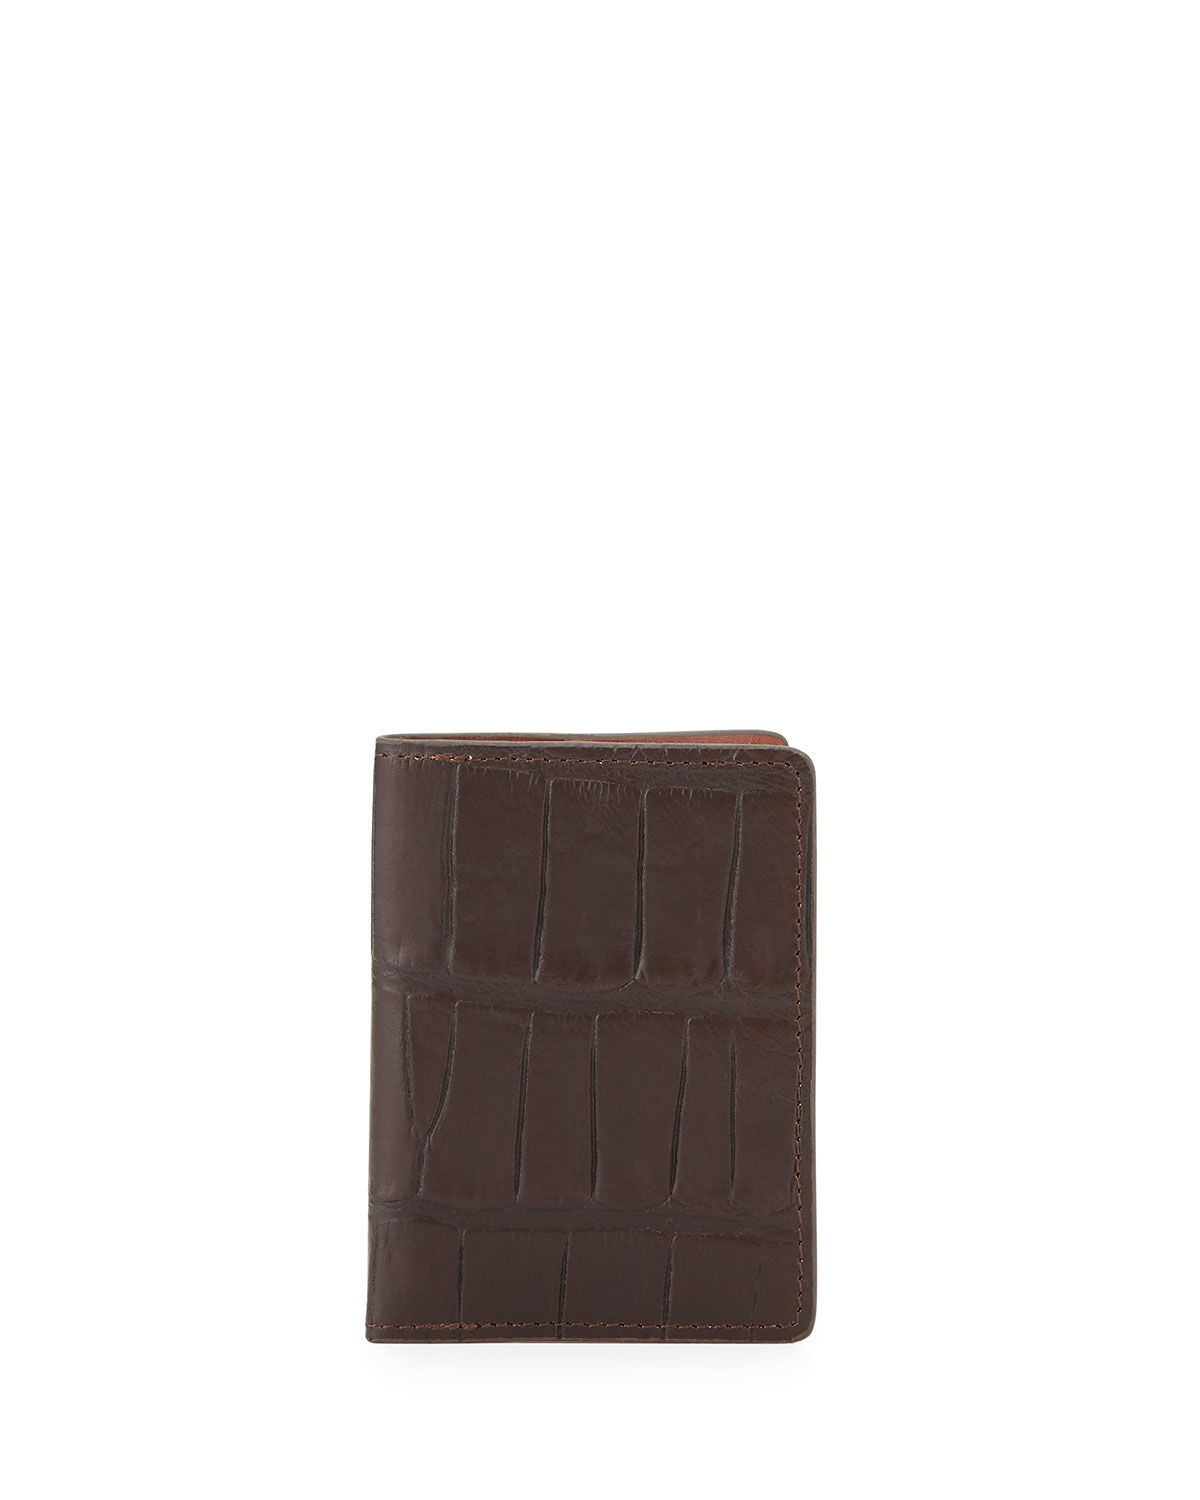 Will Leather Goods Tobias Croc-Embossed Card Case, Brown, Men\'s ...